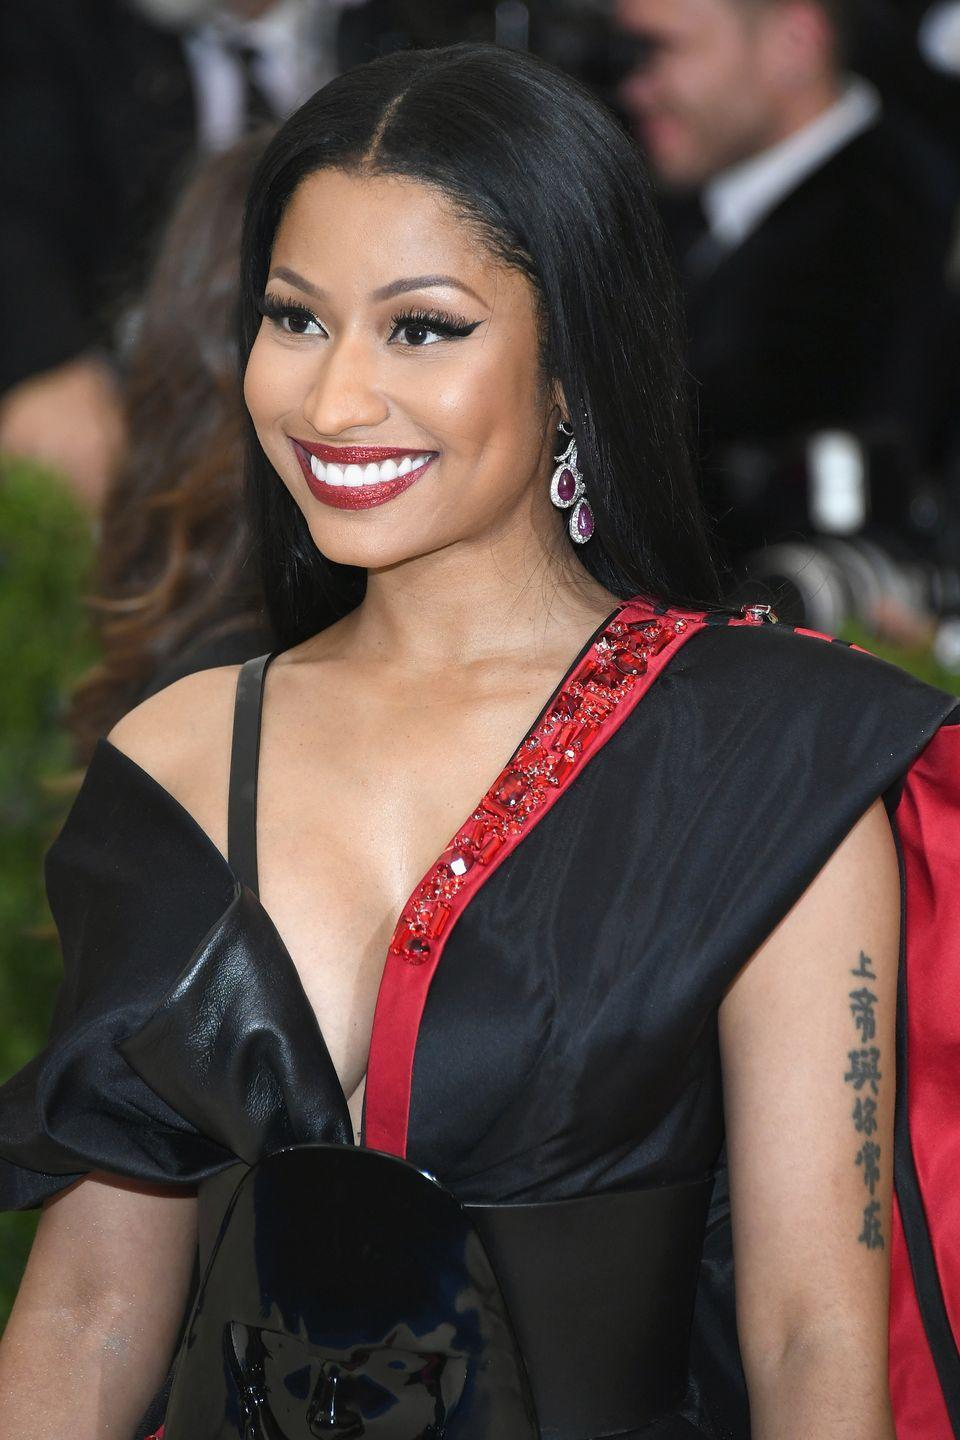 """<p>Yes, even The Queen sometimes has regrets. Nicki Minaj was 16 when she got the Chinese characters that read """"God is with me always"""" on her arm, but now that she's older, she's having second thoughts about the ink, <em><a href=""""https://www.elle.com.au/beauty/celebrity-tattoo-regrets-20910"""" rel=""""nofollow noopener"""" target=""""_blank"""" data-ylk=""""slk:Elle Australia"""" class=""""link rapid-noclick-resp"""">Elle Australia</a></em> reports. """"You have no idea what you want to put on your body at the age of 16,"""" the Grammy nominee reportedly said in an interview. """"You need to wait until at least 21 and decide.""""</p>"""